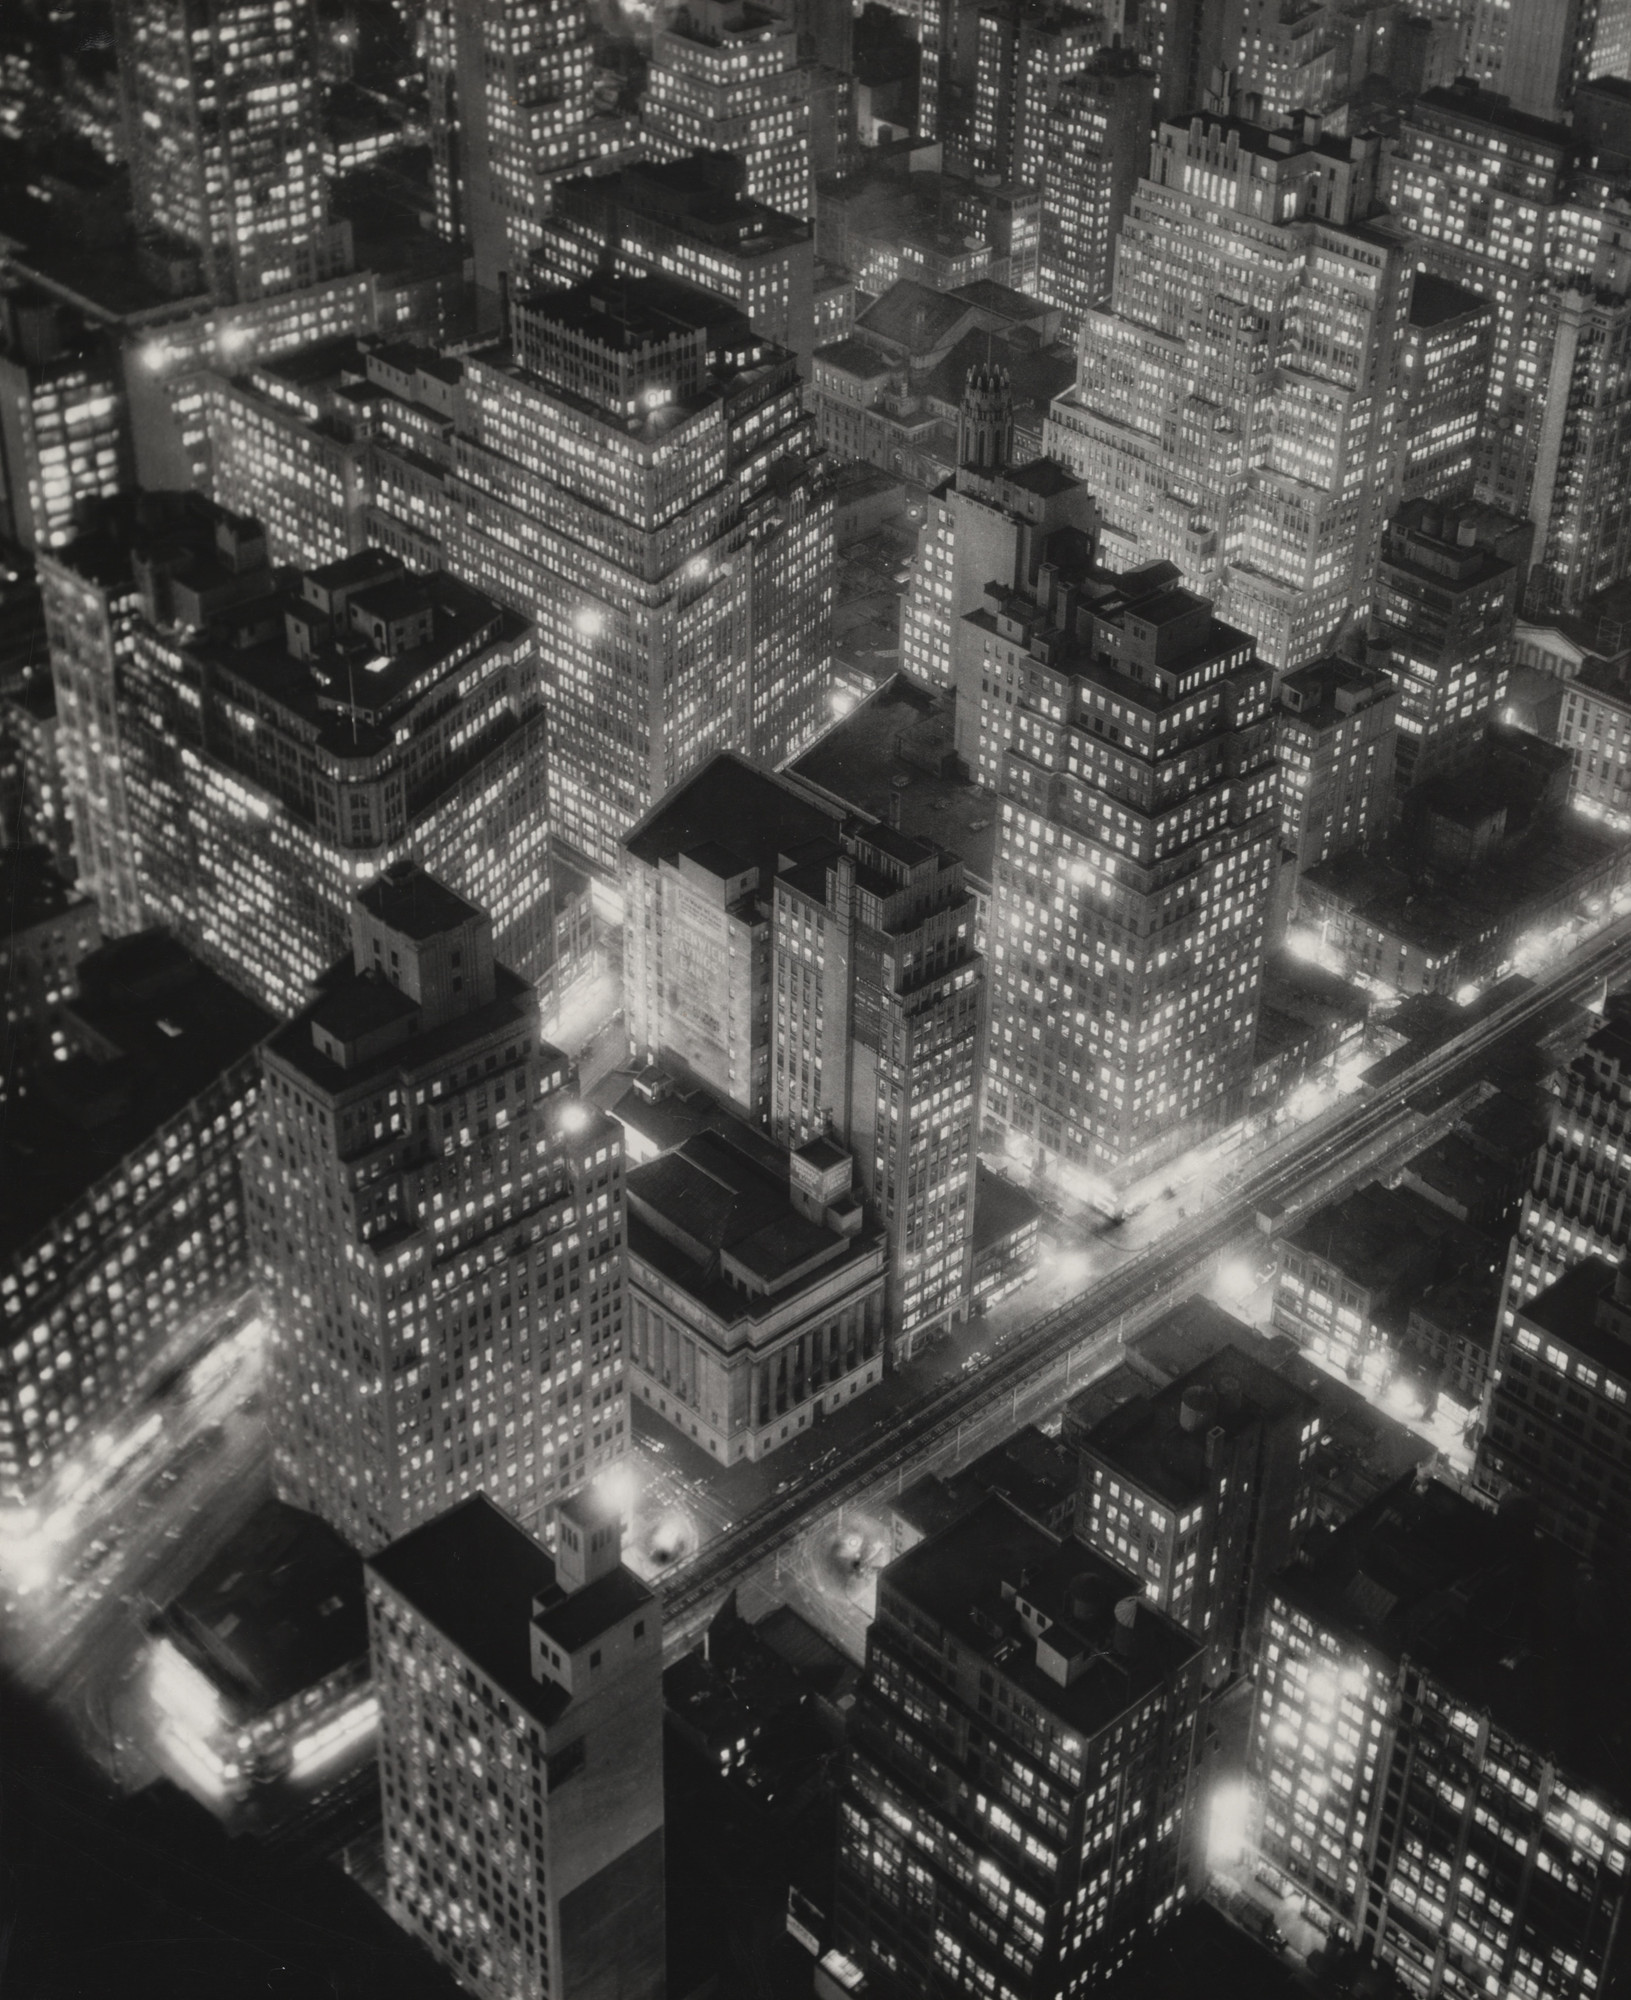 Berenice Abbott. New York at Night. 1932